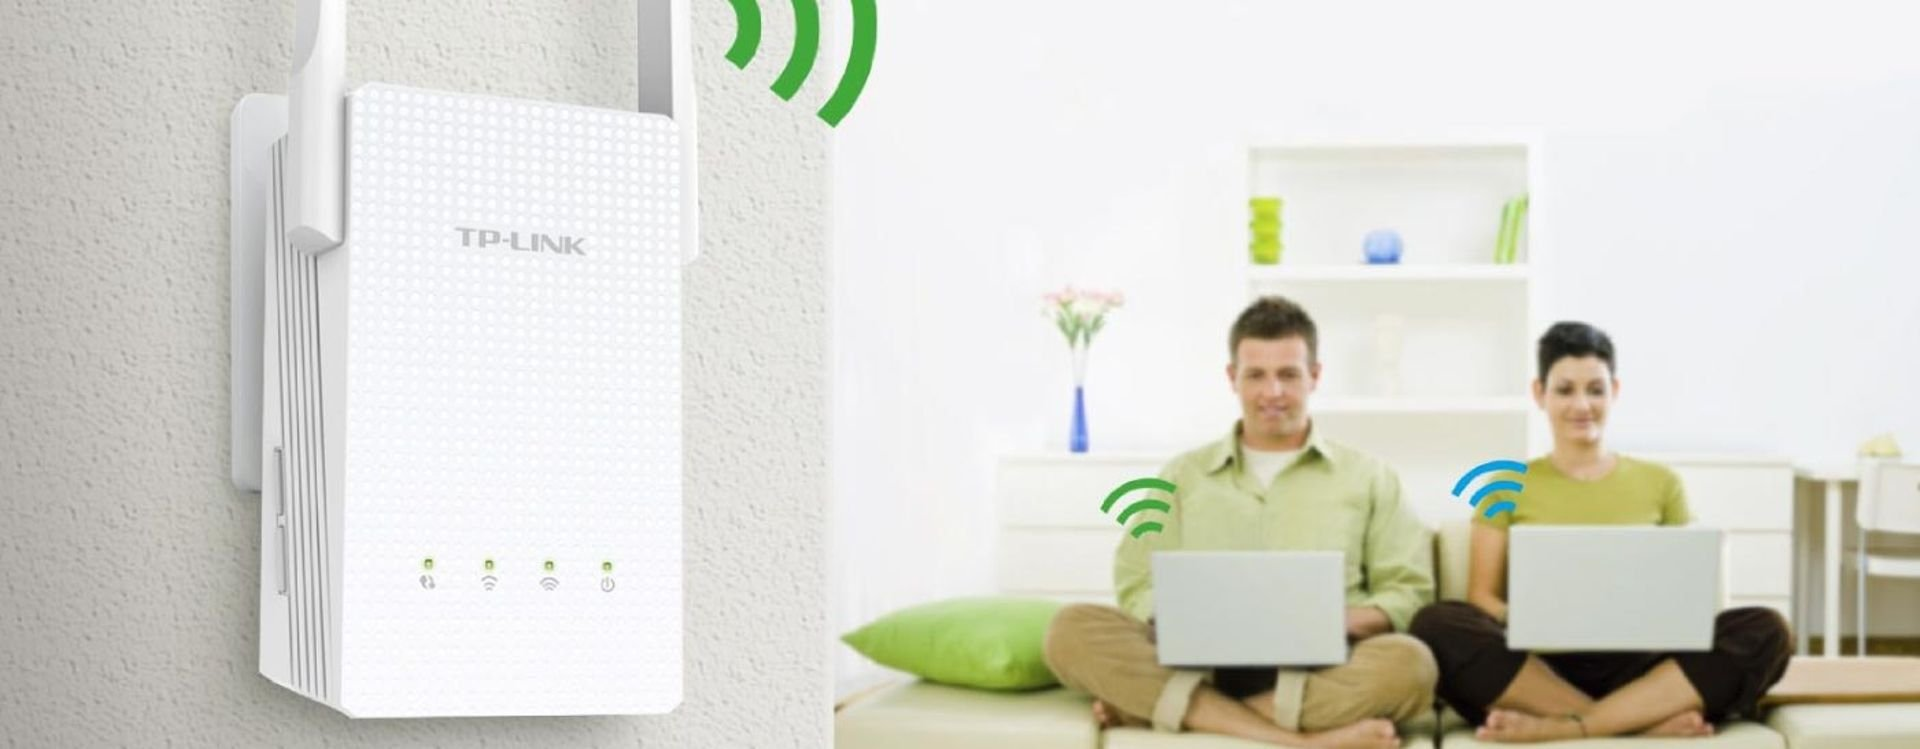 WiFi Boosters are Important in Companies and Large Homes.